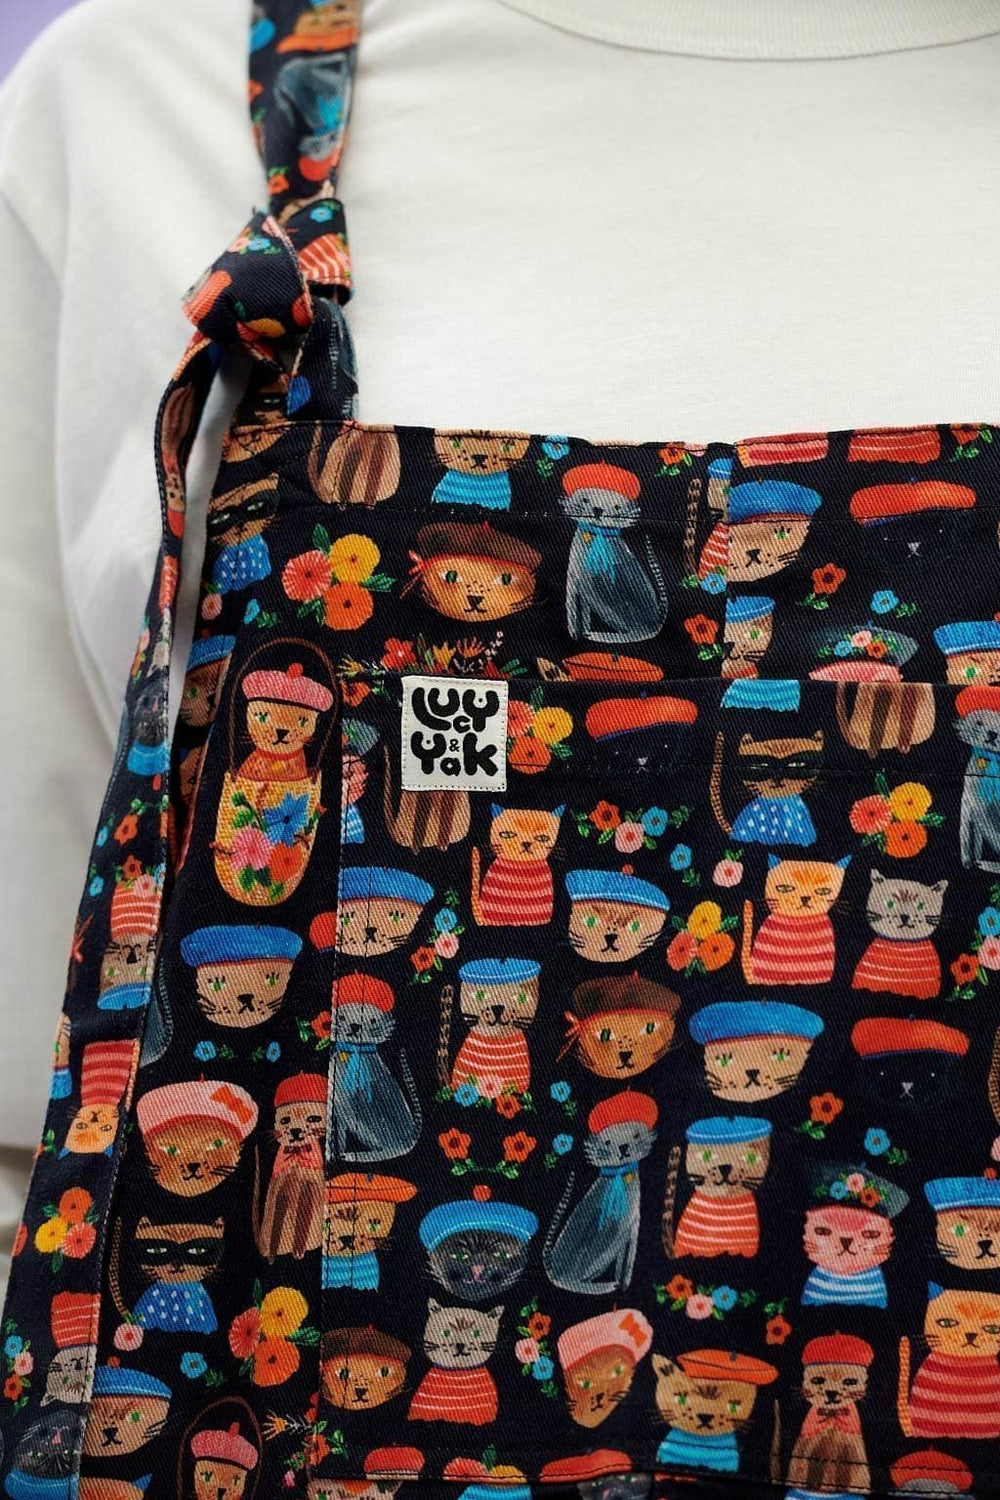 Lucy & Yak Dungarees Original Organic Cotton Dungarees in Cats Print